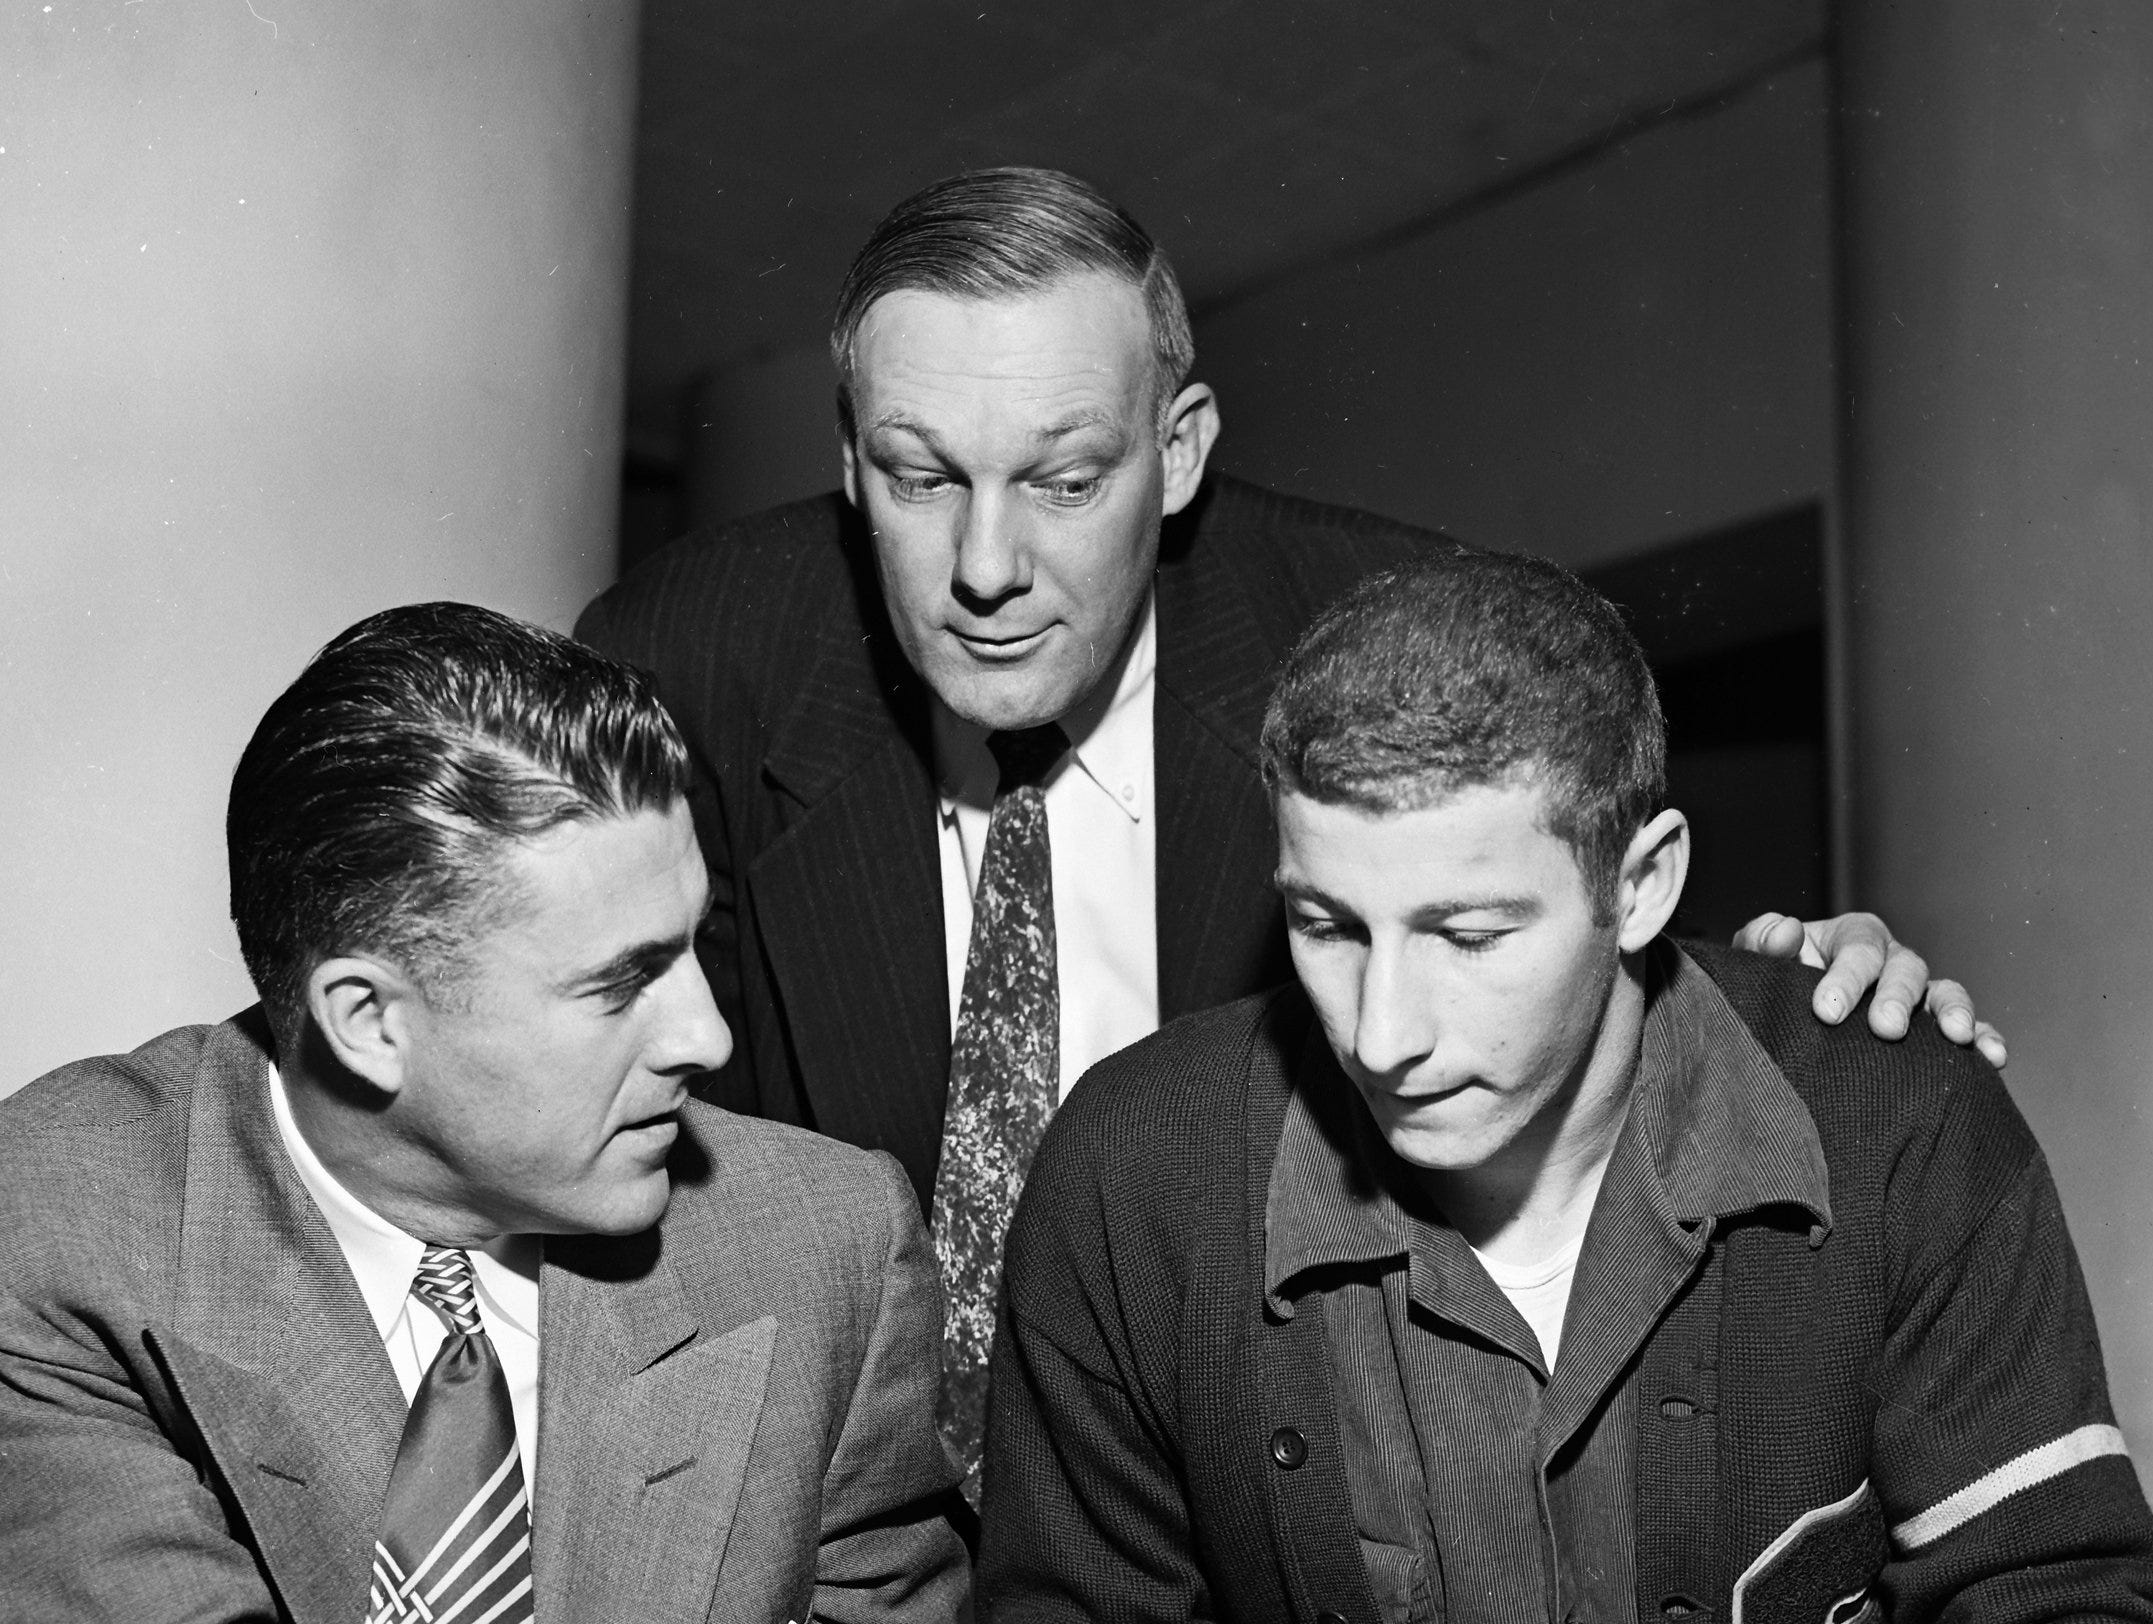 Richard Moskovitz (Right), South Side halfback named as prep football player of the week by the Quarterback Club of Memphis the second week of November 1952, looks over grid action pictures in a magazine with his coach, Hick Ewing (Center) and Bob Swisher, one-time pro star and now a coach at Memphis Navy.  Moskovitz was honored for his play in South Side's 14-7 win over Tech the previous week.